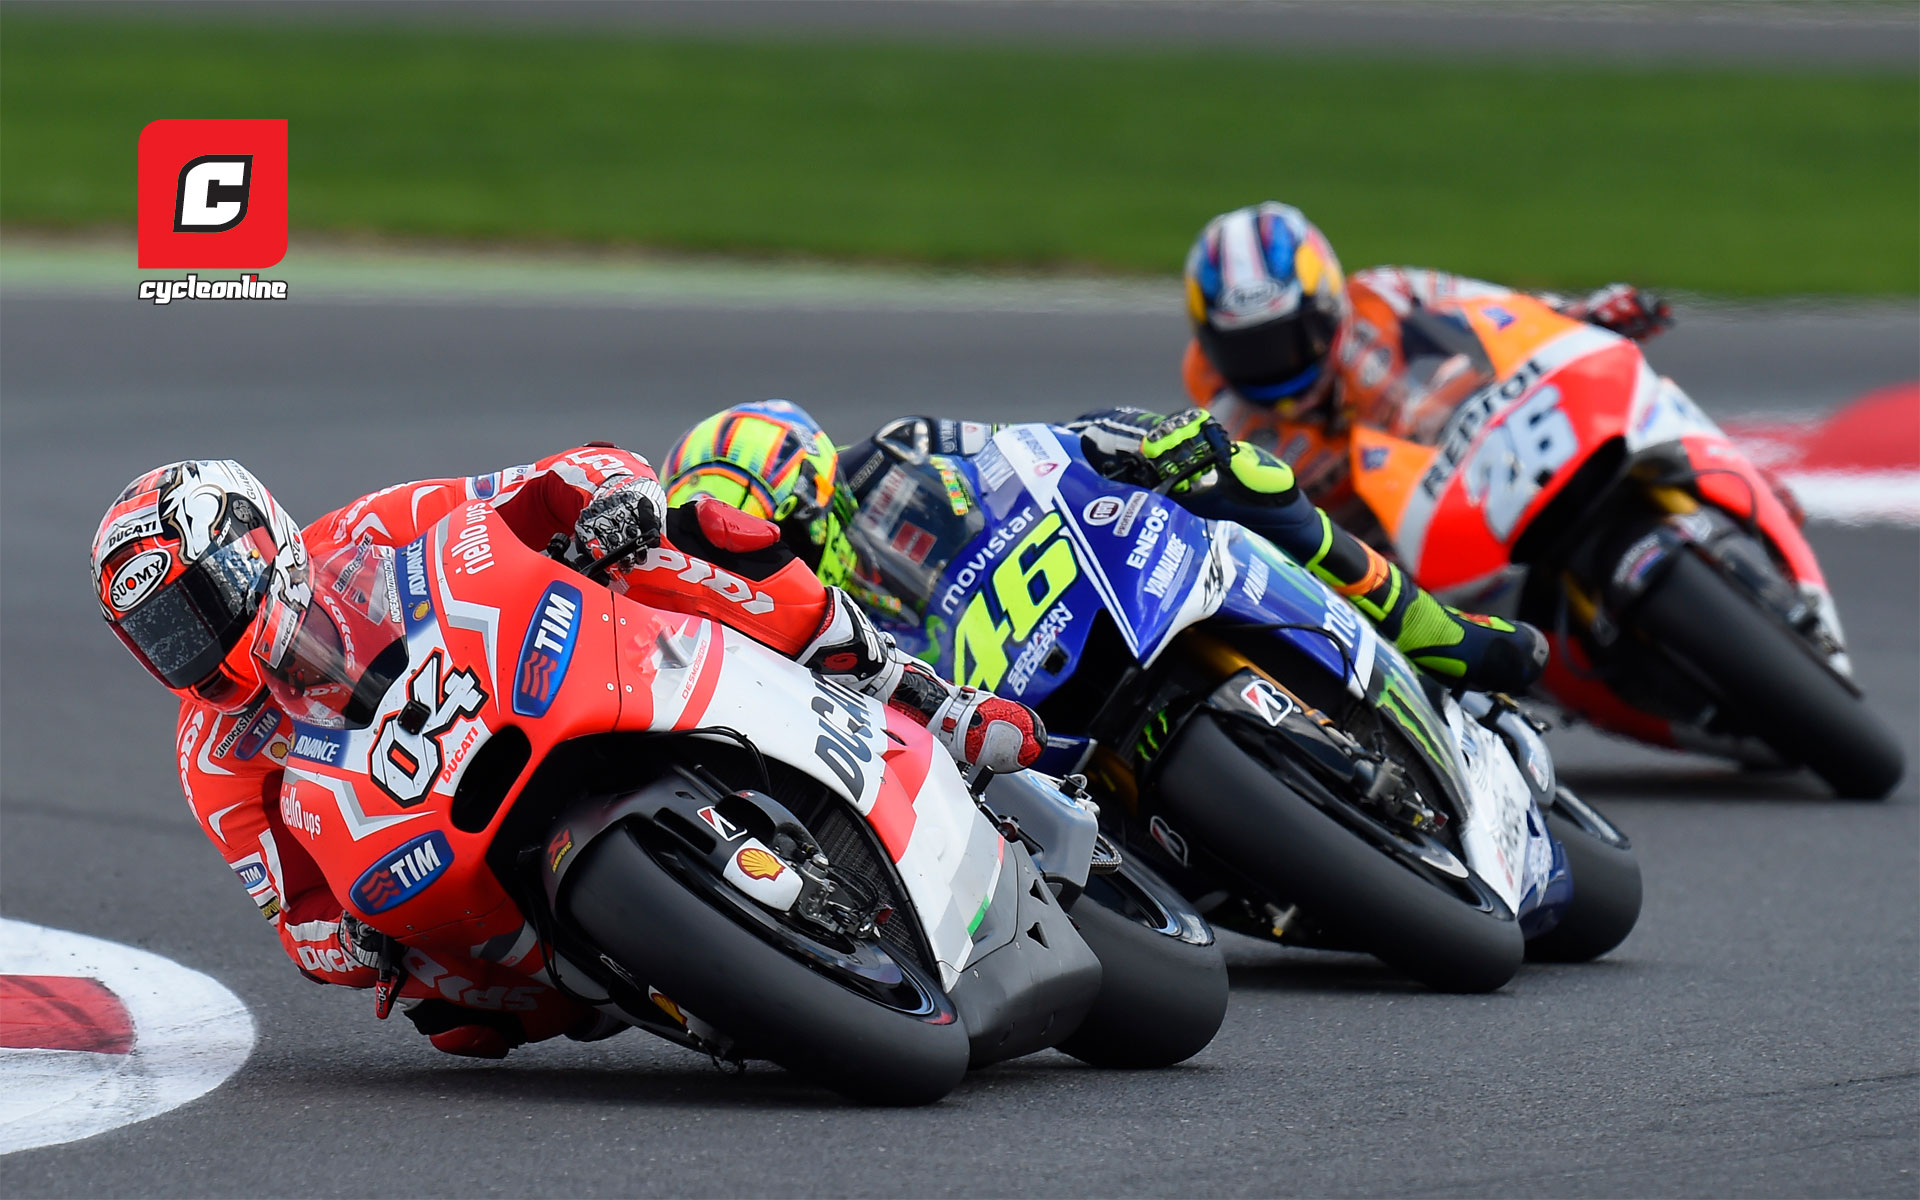 Wednesday Wallpaper Dovizioso Rossi and Pedrosa   CycleOnlinecomau 1920x1200